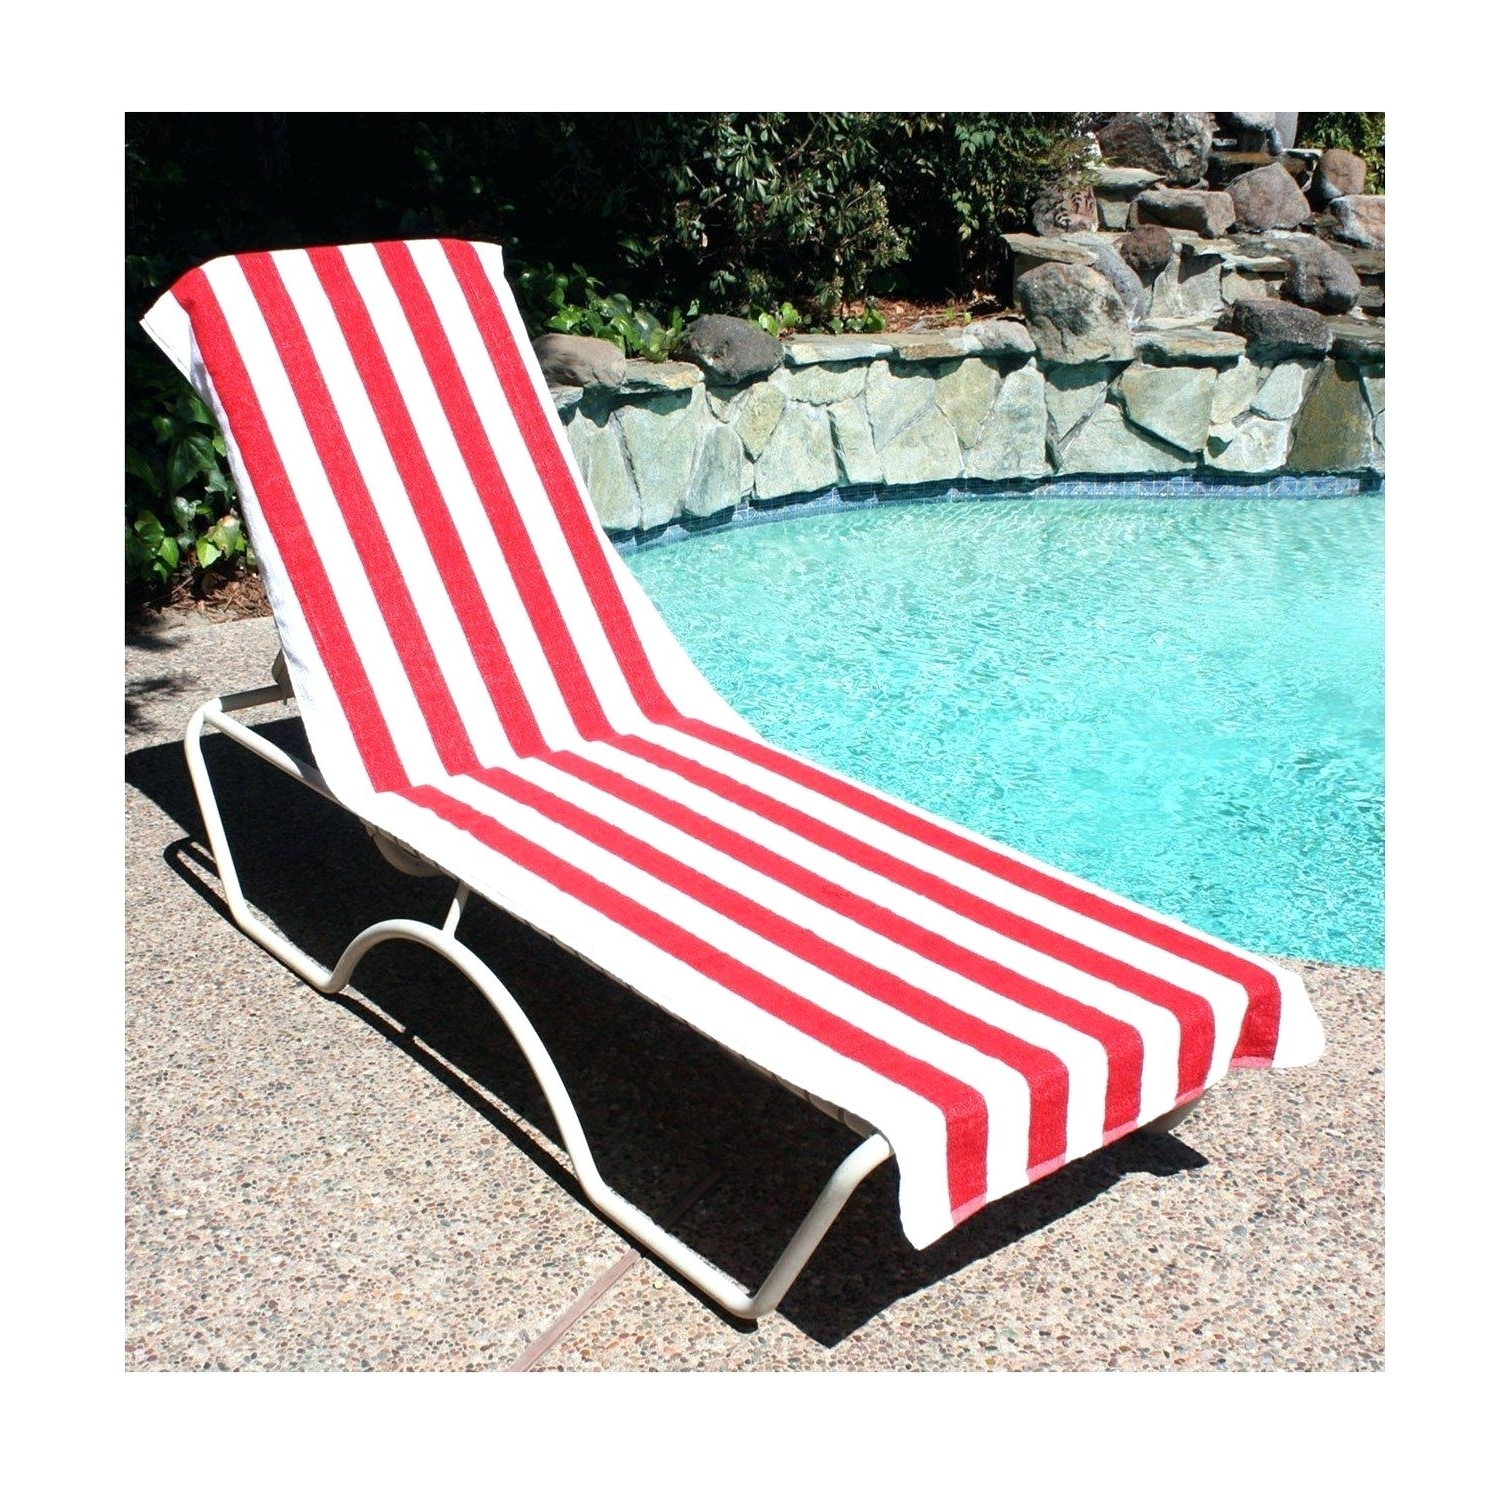 Most Recent Beach Chair Covers Towel Lounge Terry Cloth – Biophilessurf With Regard To Chaise Lounge Towel Covers (View 10 of 15)